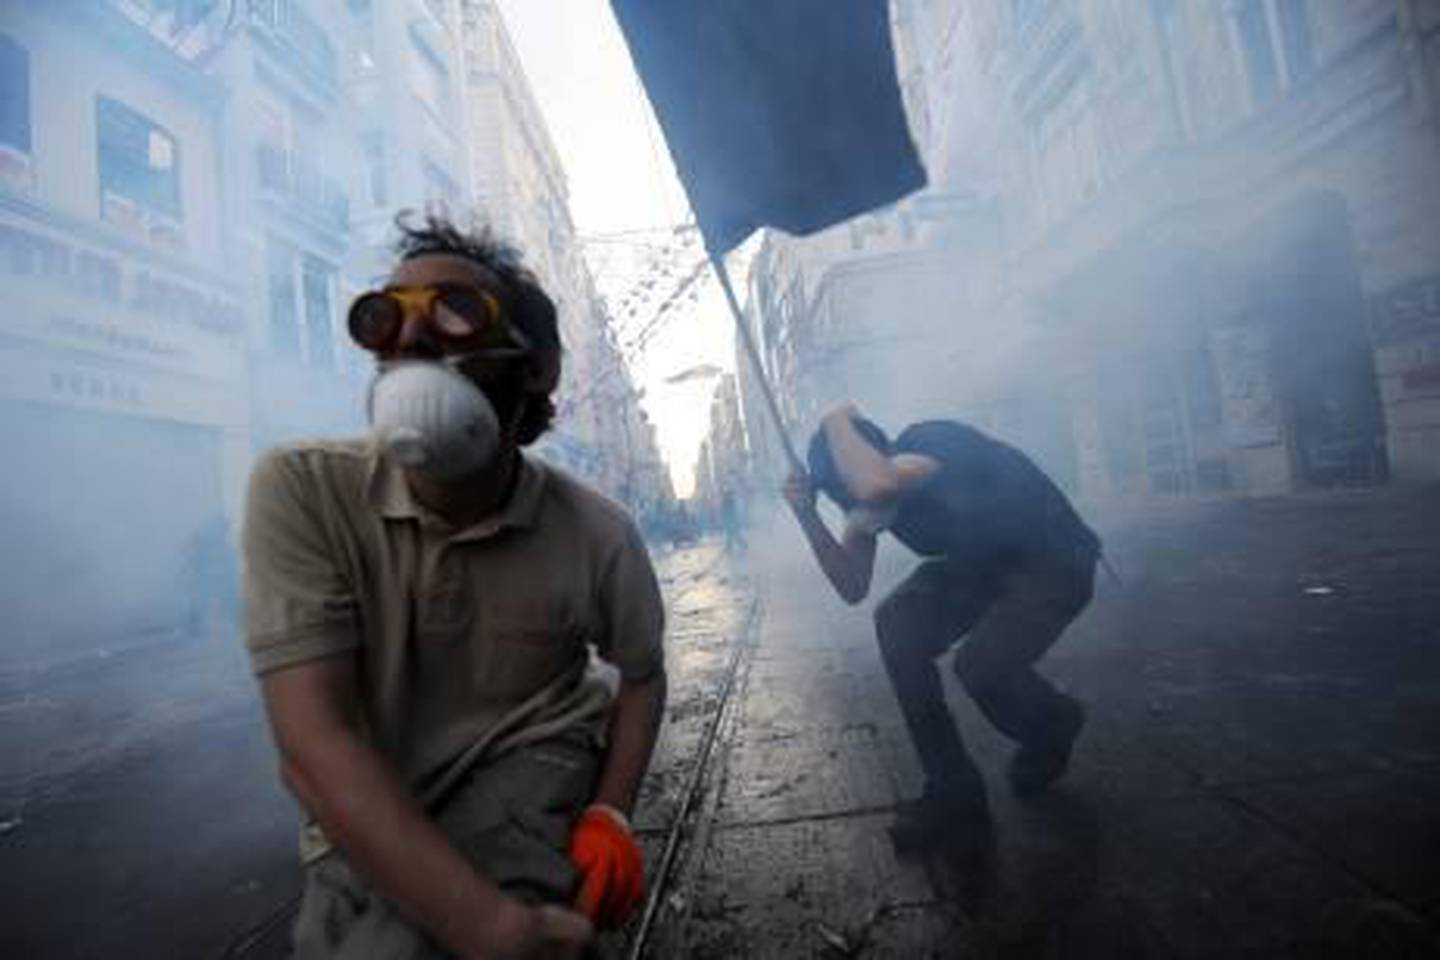 Protestors clash with Turkish riot policemen during a protest against the demolition of Taksim Gezi Park on May 31, 2013, in Taksim quarter of Istanbul. Police reportedly used tear gas on early May 31 to disperse a group, who were standing guard in Gezi Parki to prevent the Istanbul metropolitan municipality from demolishing the last remaining green public space in the center of Istanbul as a part of a major  renewal project of Taksim. AFP PHOTO/BULENT KILIC